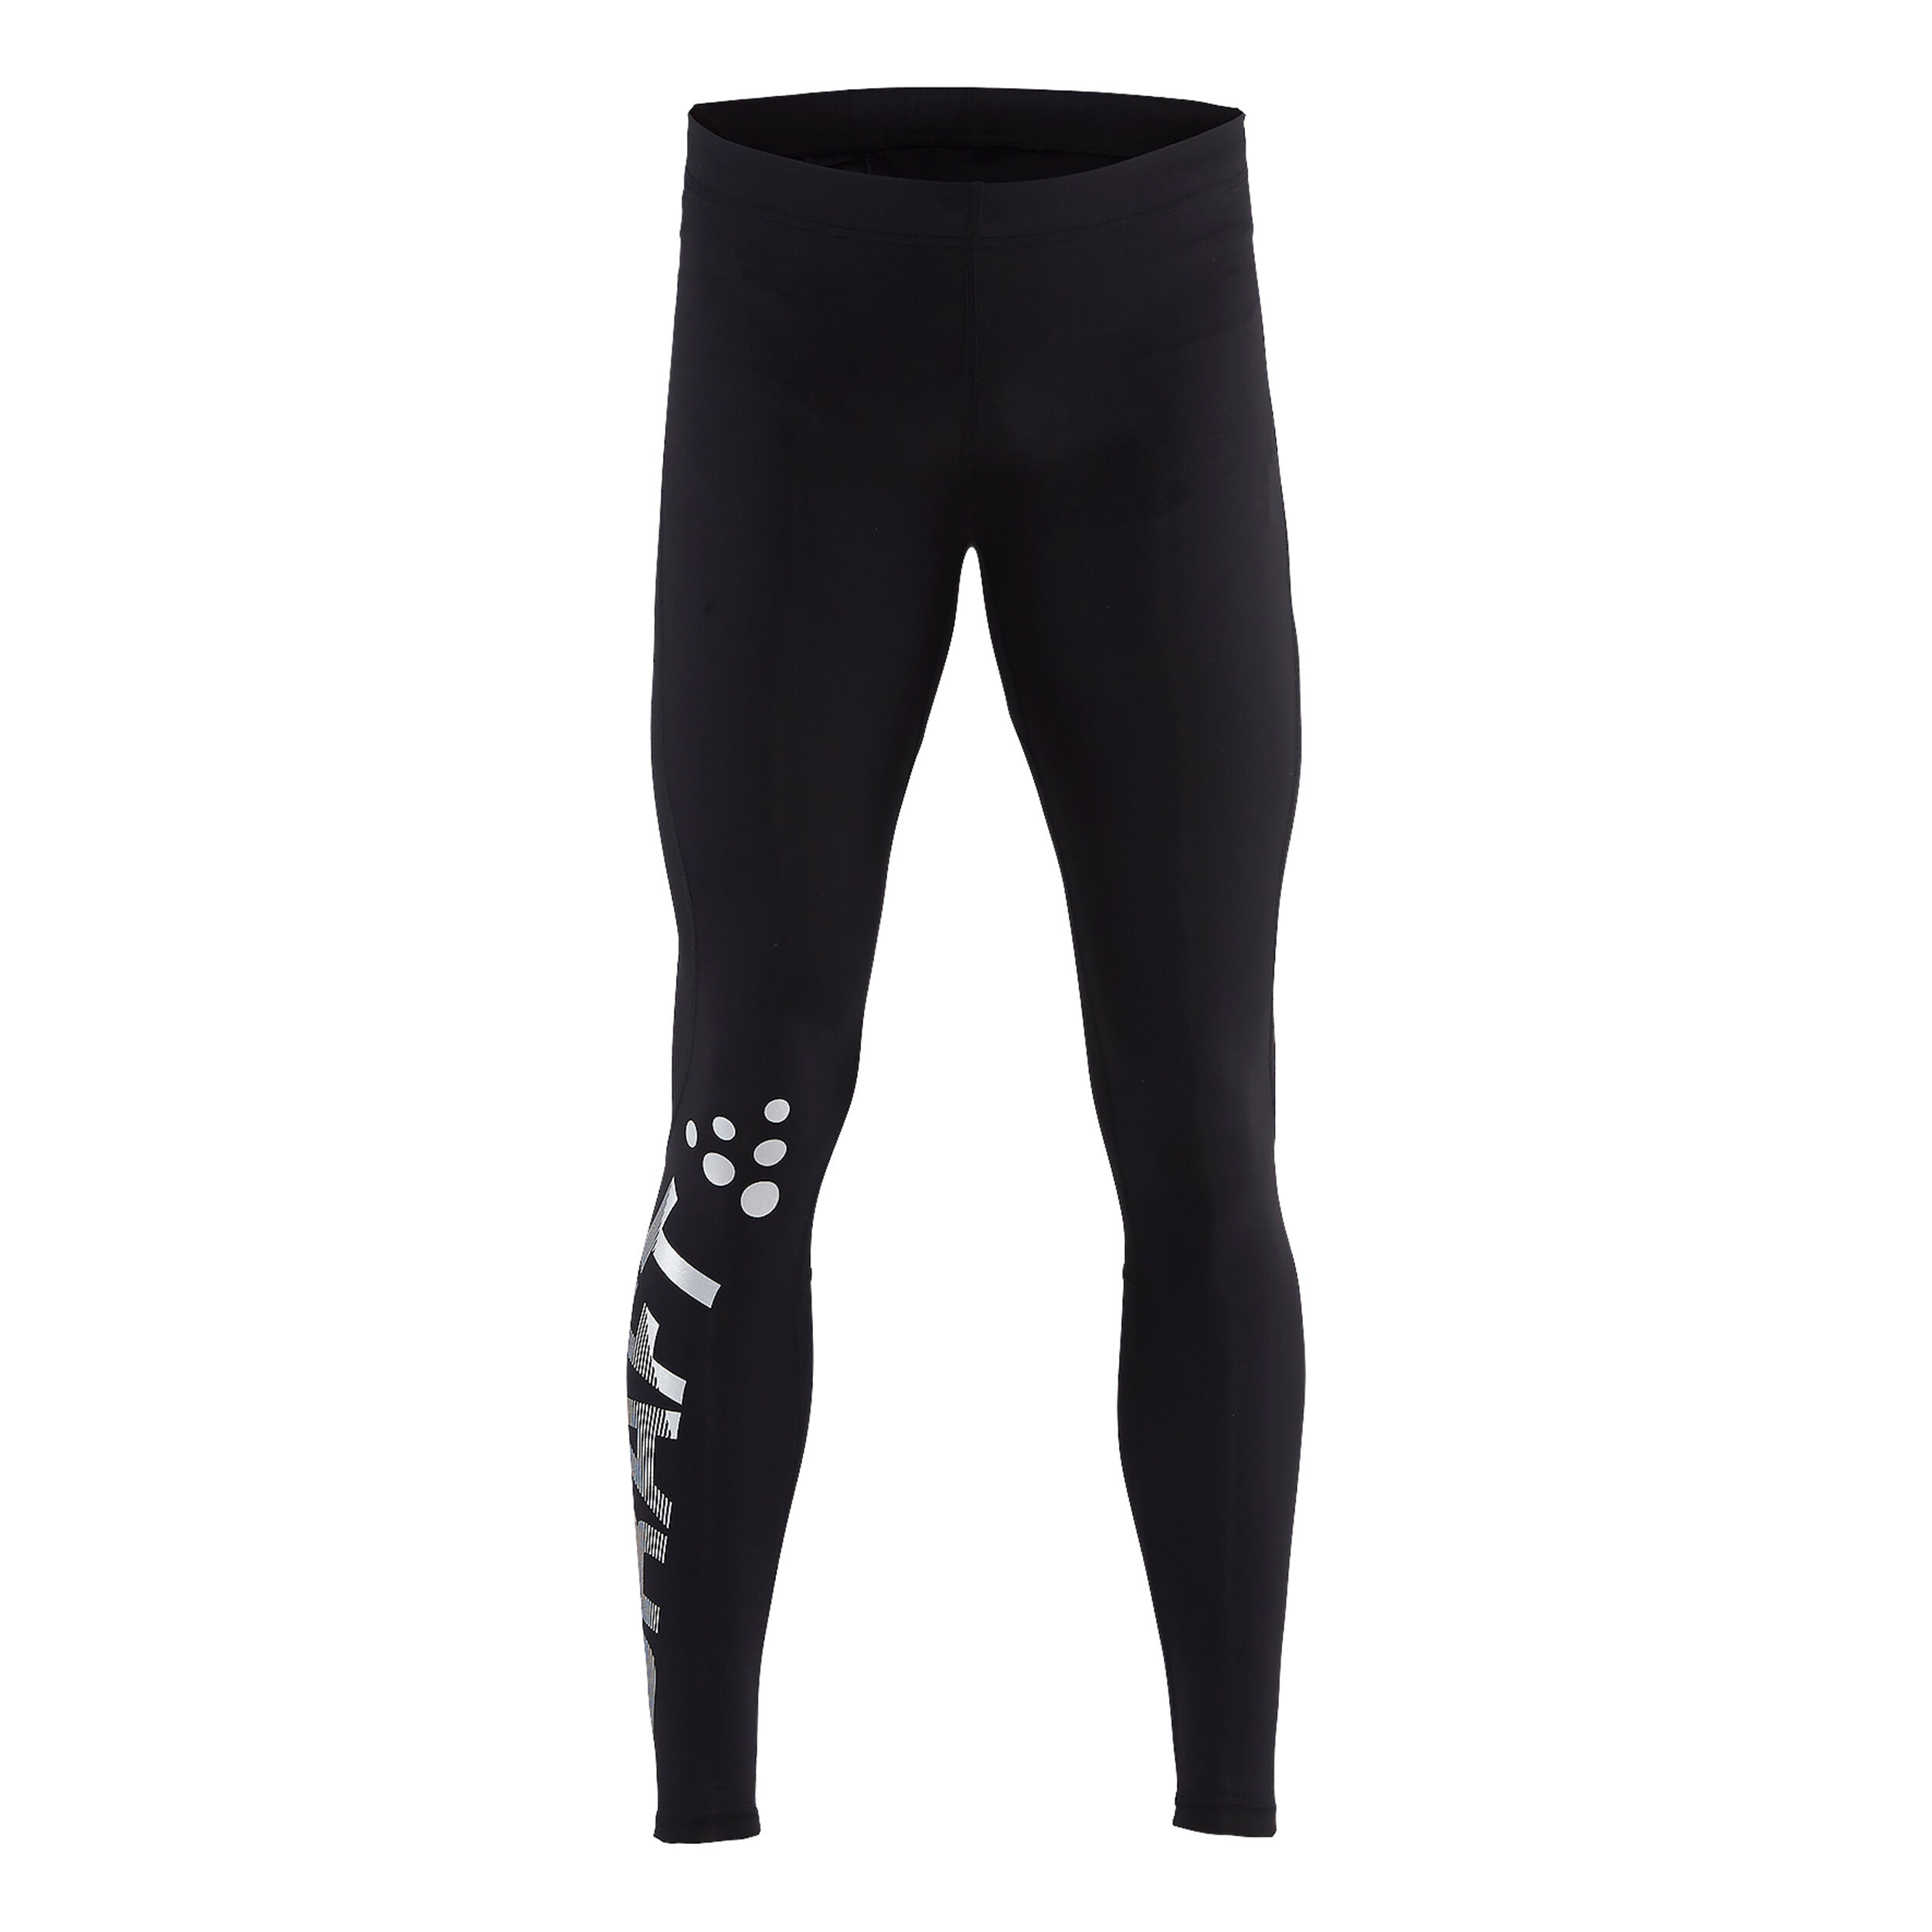 Craft Delta 2.0 Long Tight Herren Schwarz, Silber